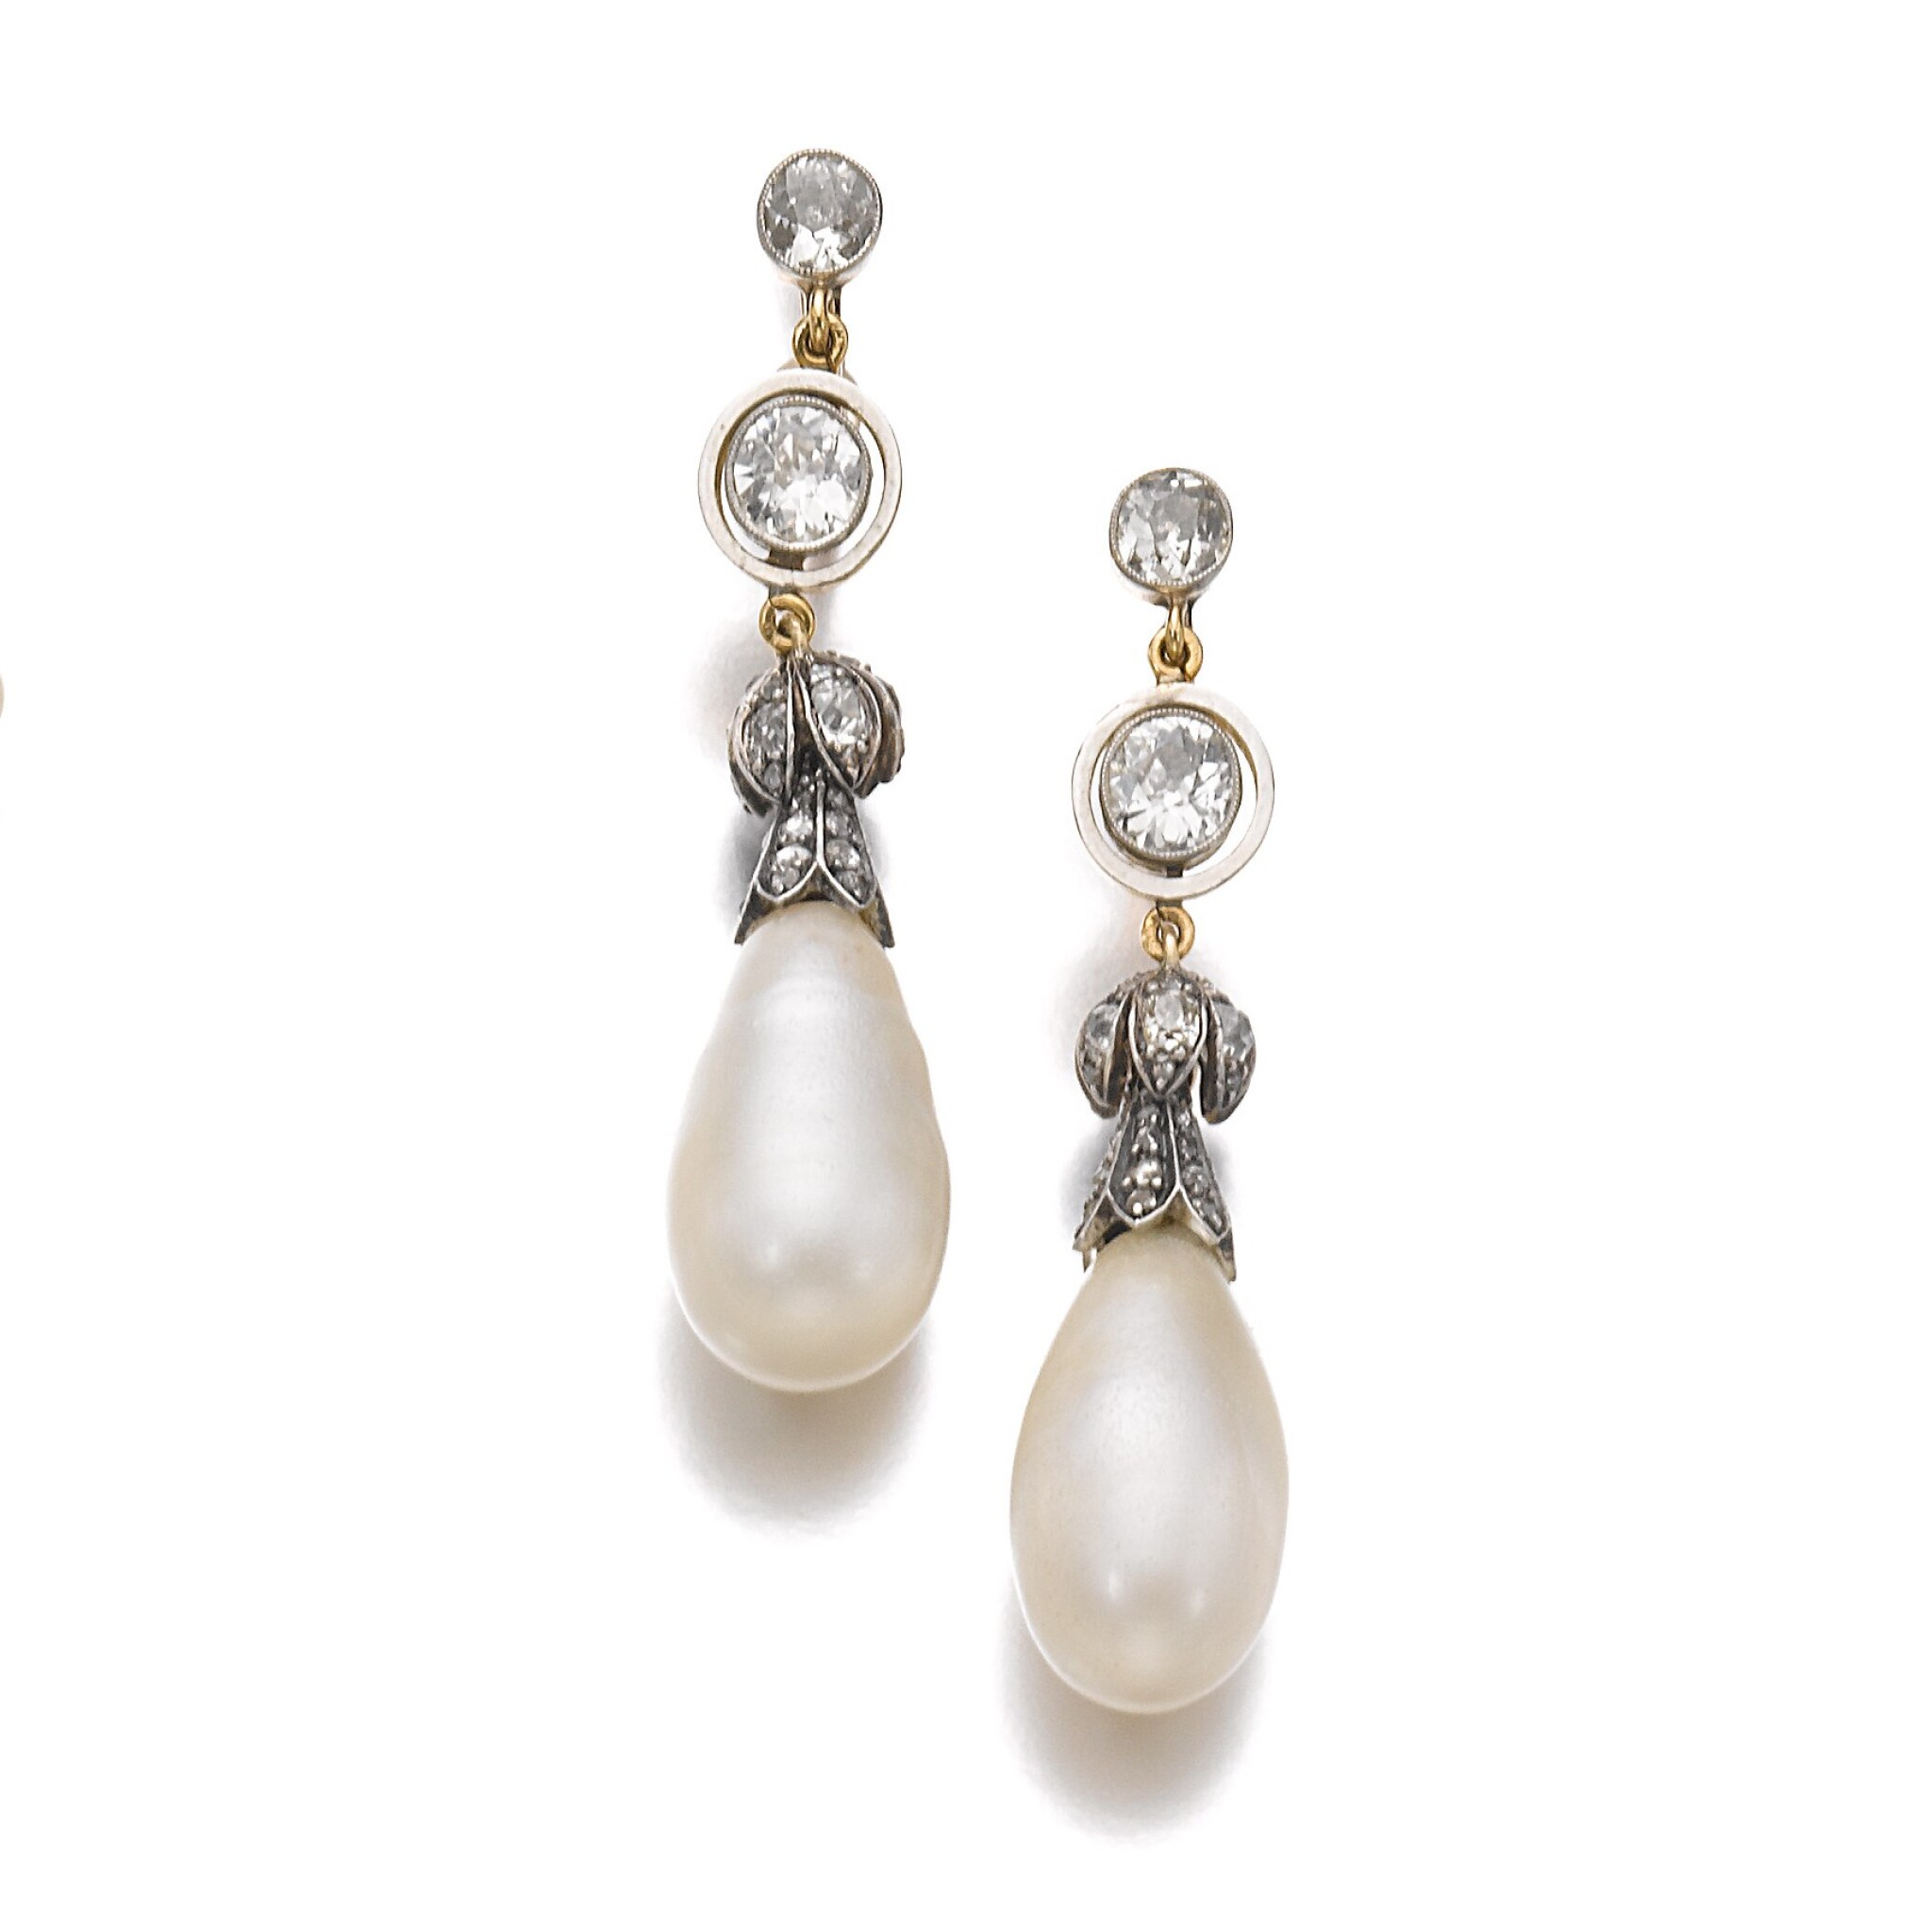 View full screen - View 1 of Lot 339. PAIR OF NATURAL PEARL AND DIAMOND EARRINGS, LATE 19TH CENTURY AND LATER.